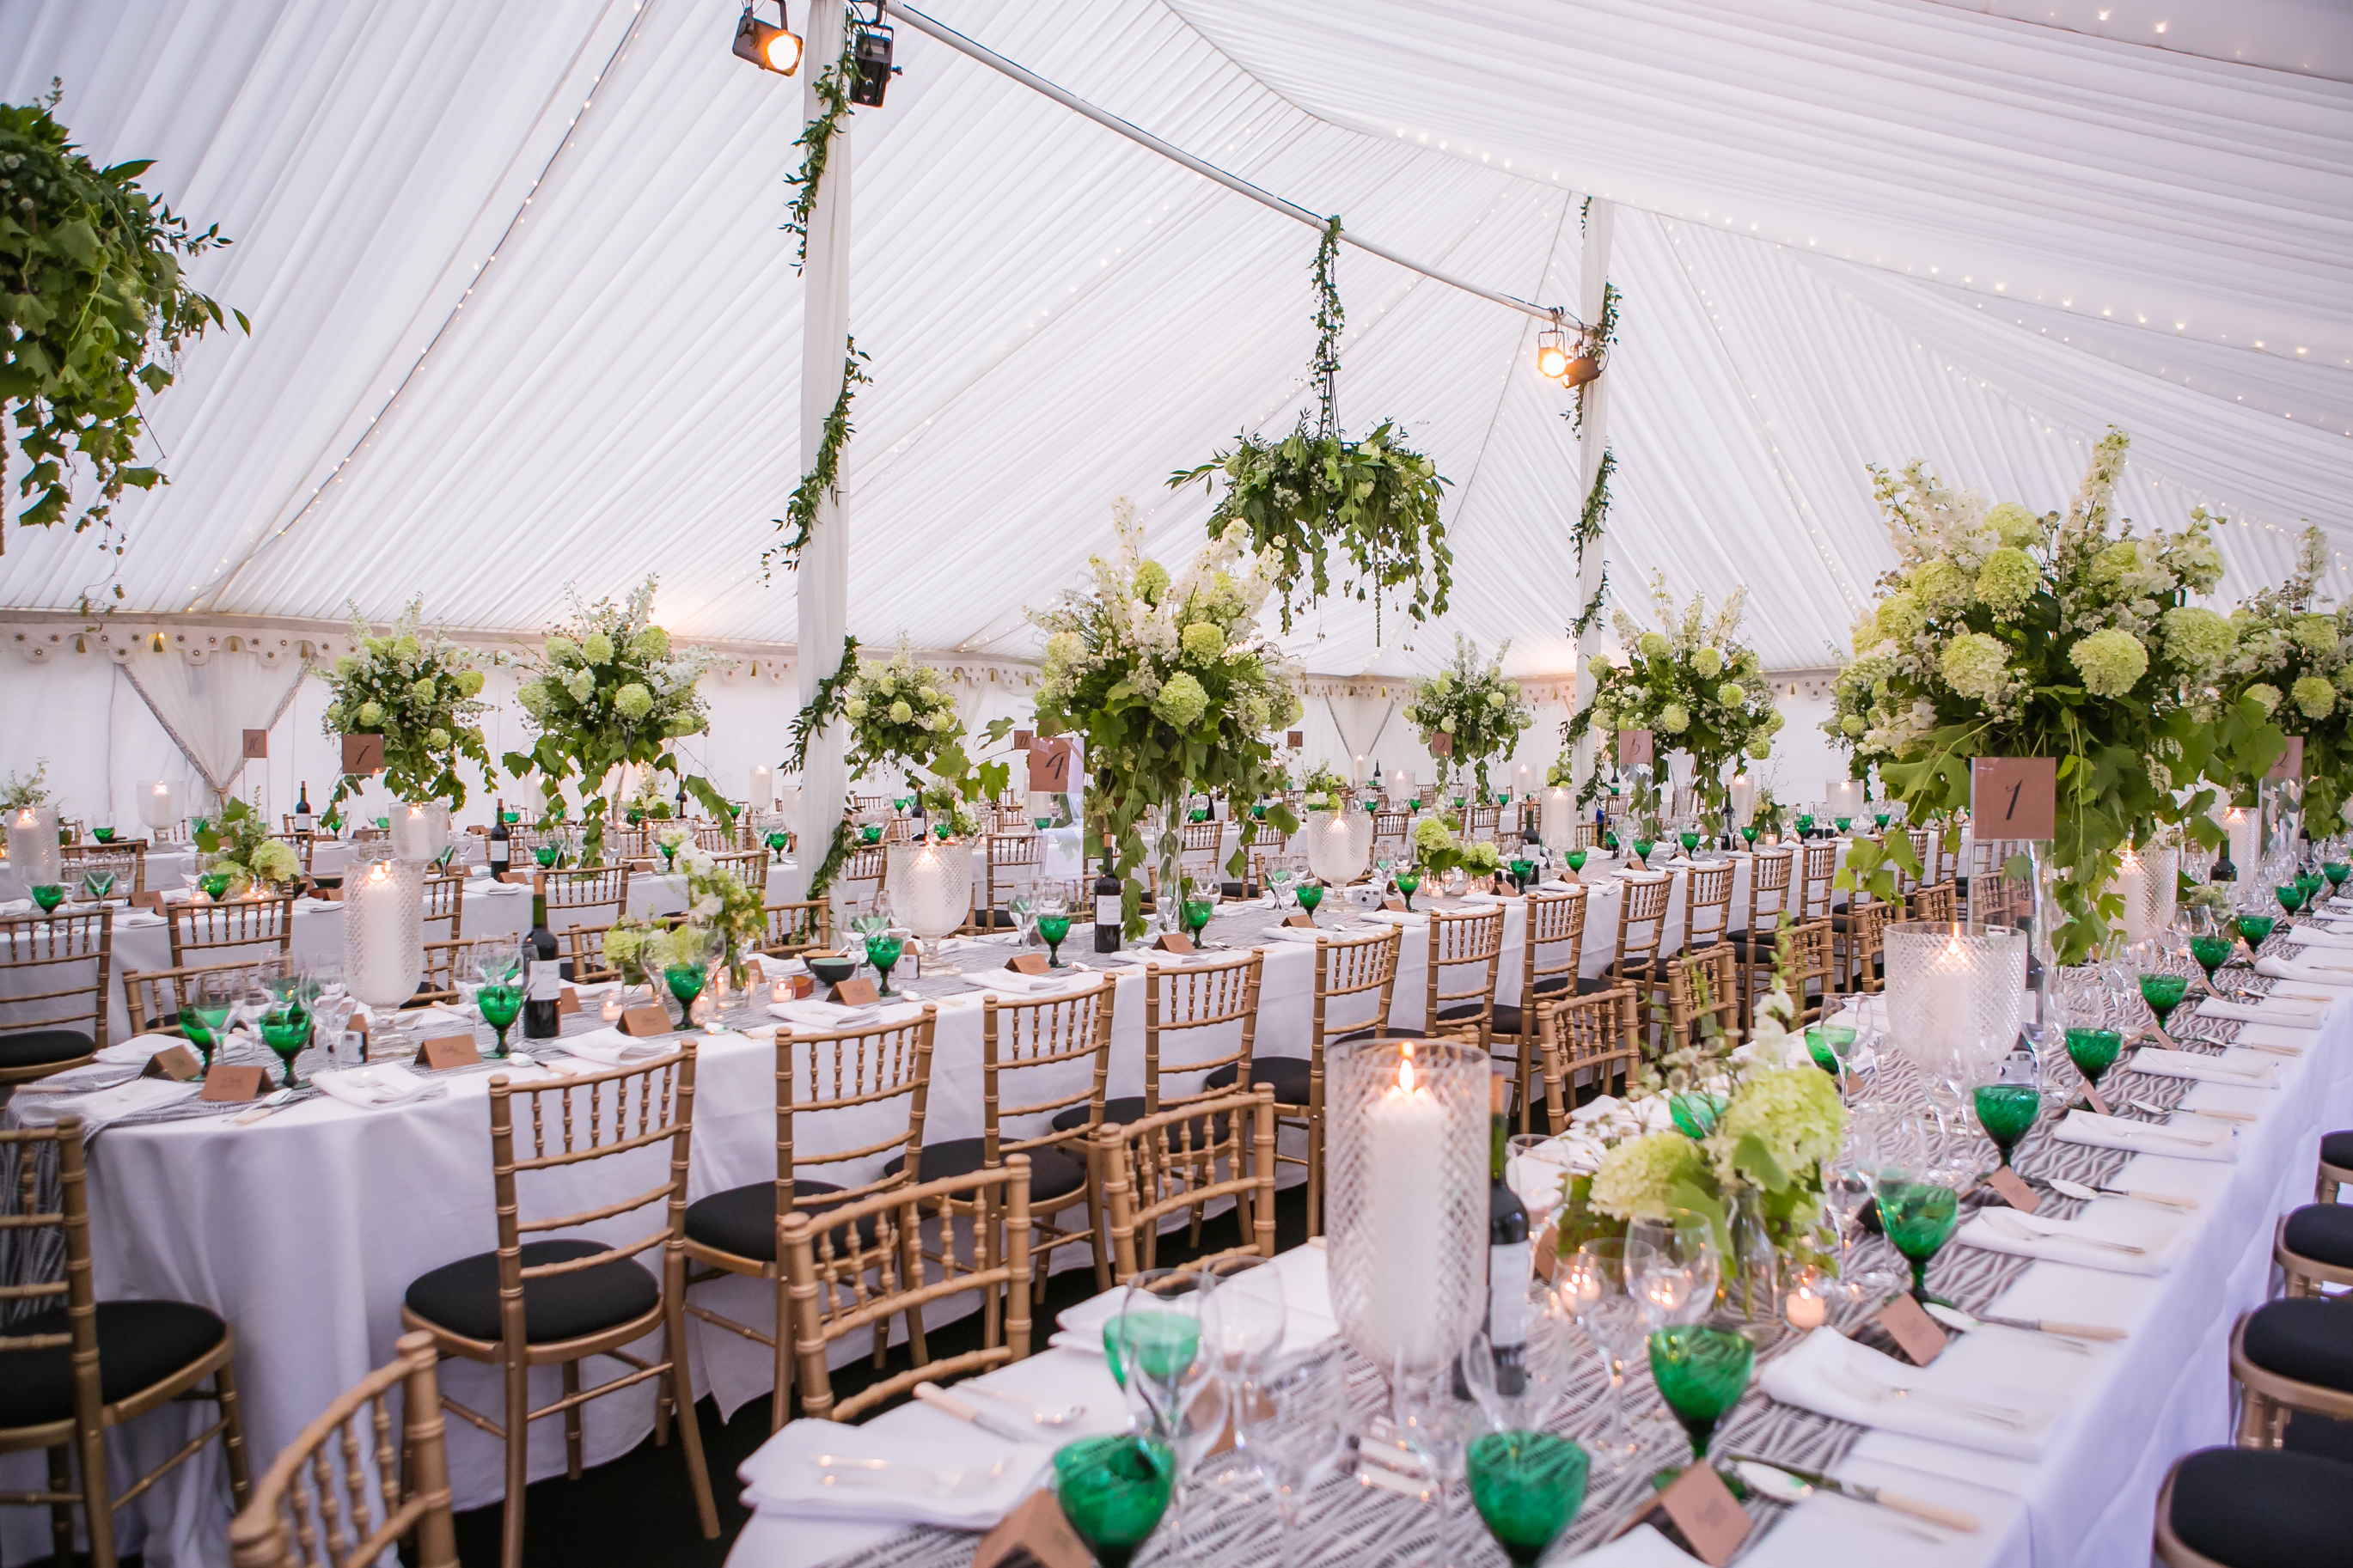 Interiors of a wedding marquee